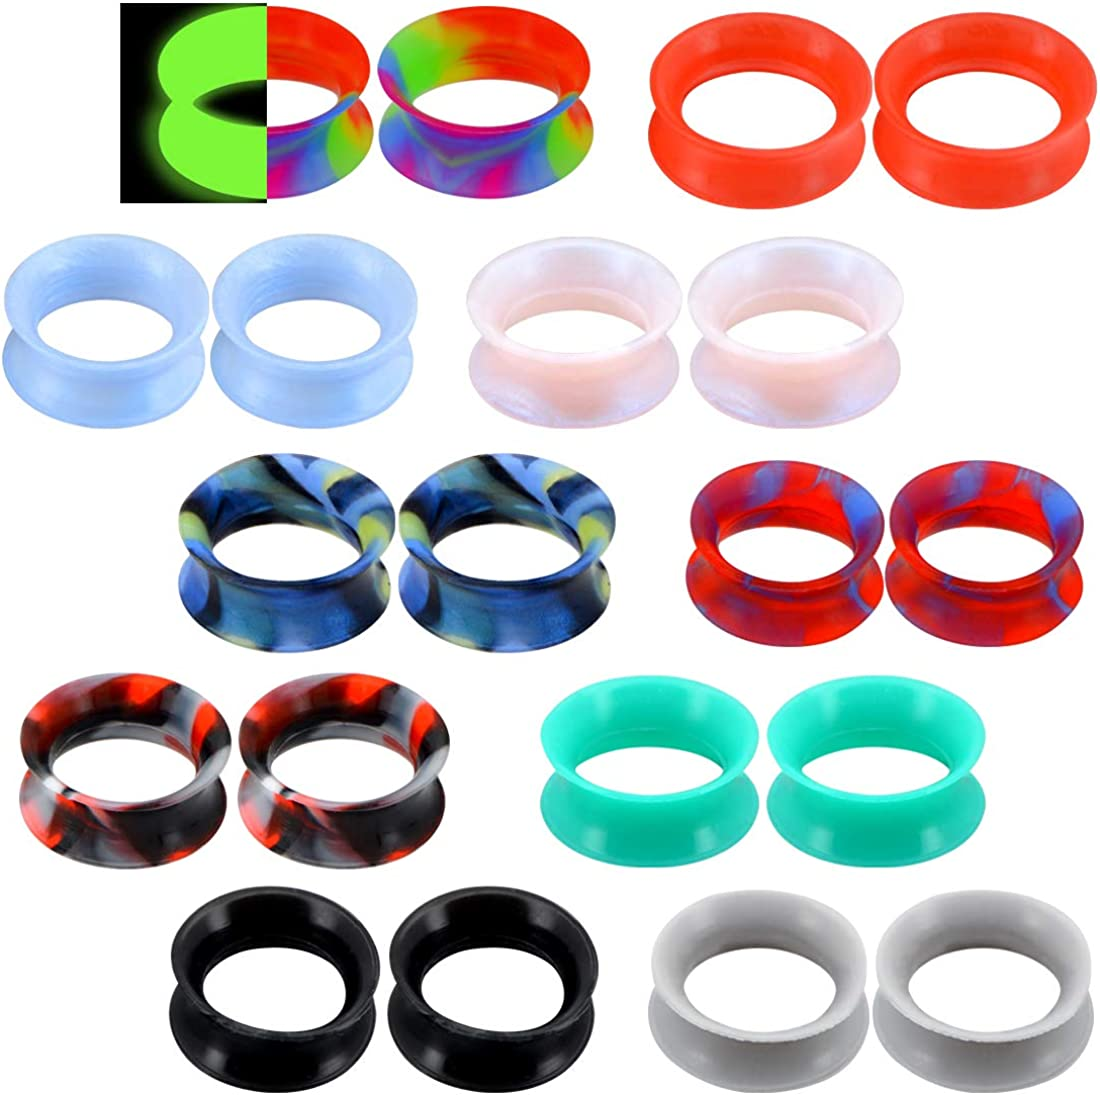 COCHARM 20 PCS Thin Silicone Ear Plugs Tunnels Double Flared Flexible Tunnel Ear Stretching Plug Gauge Body Piercing Jewelry